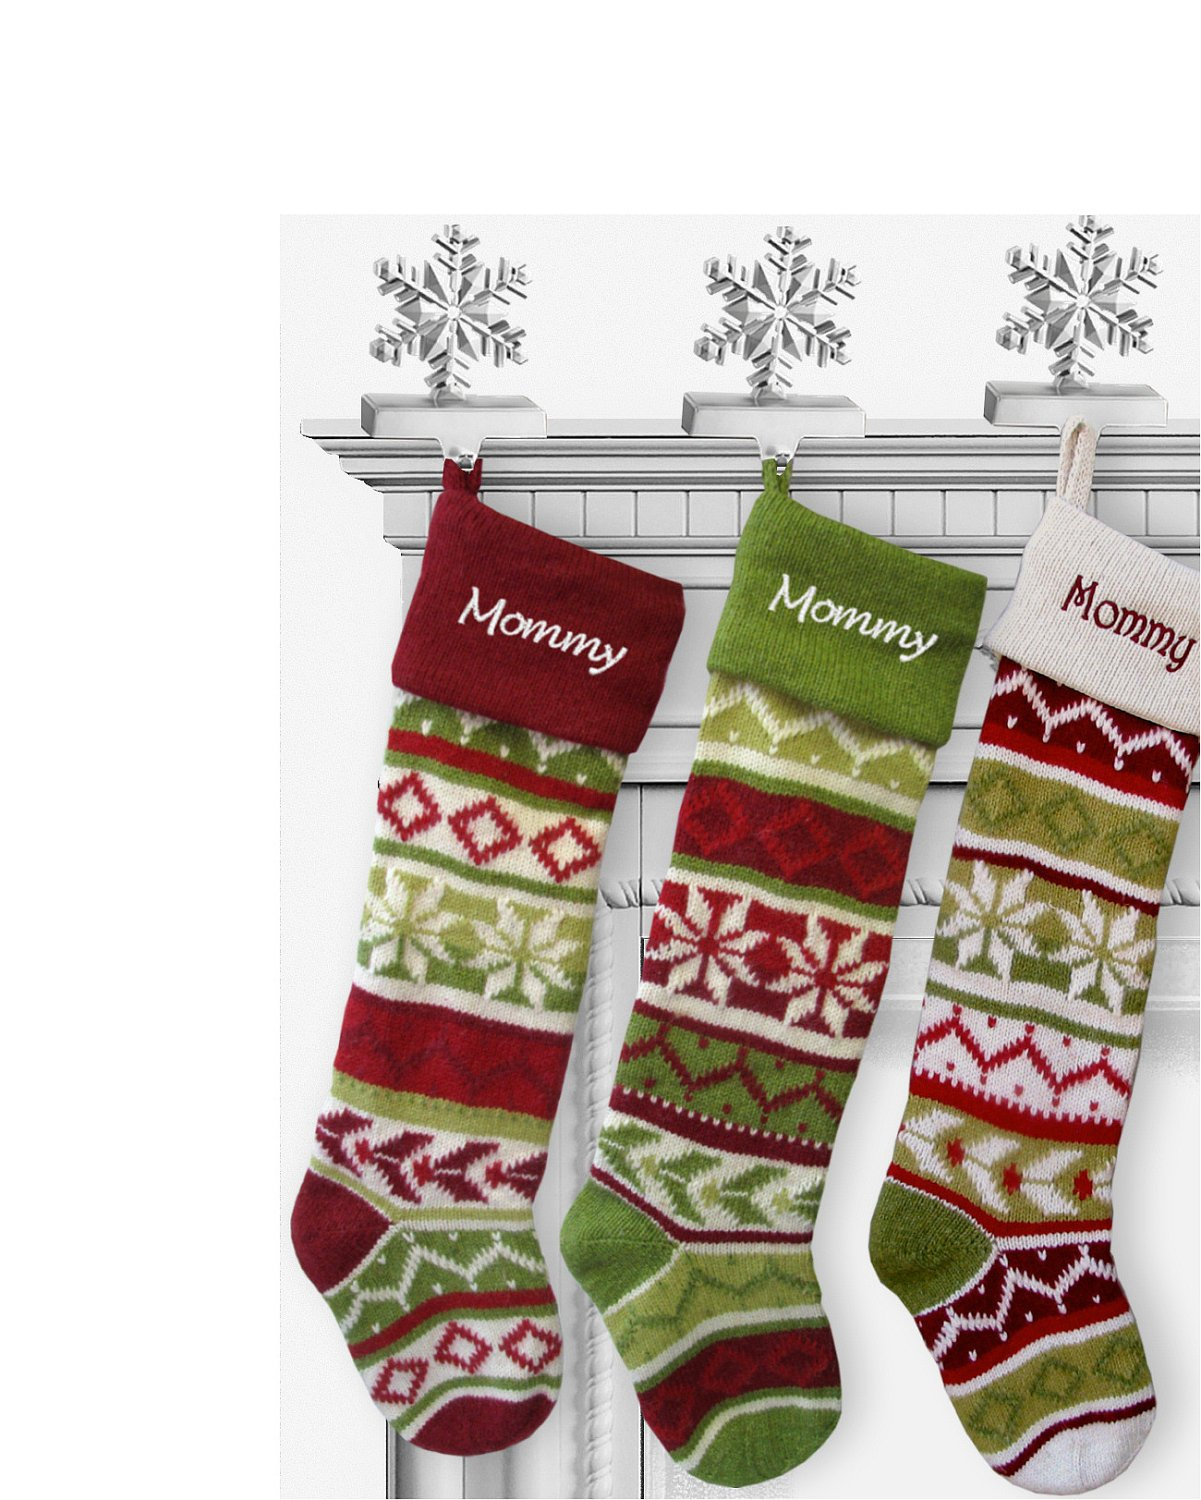 Personalized knitted christmas stockings green red white personalized knitted christmas stockings green red white cuff amazon kitchen home bankloansurffo Choice Image